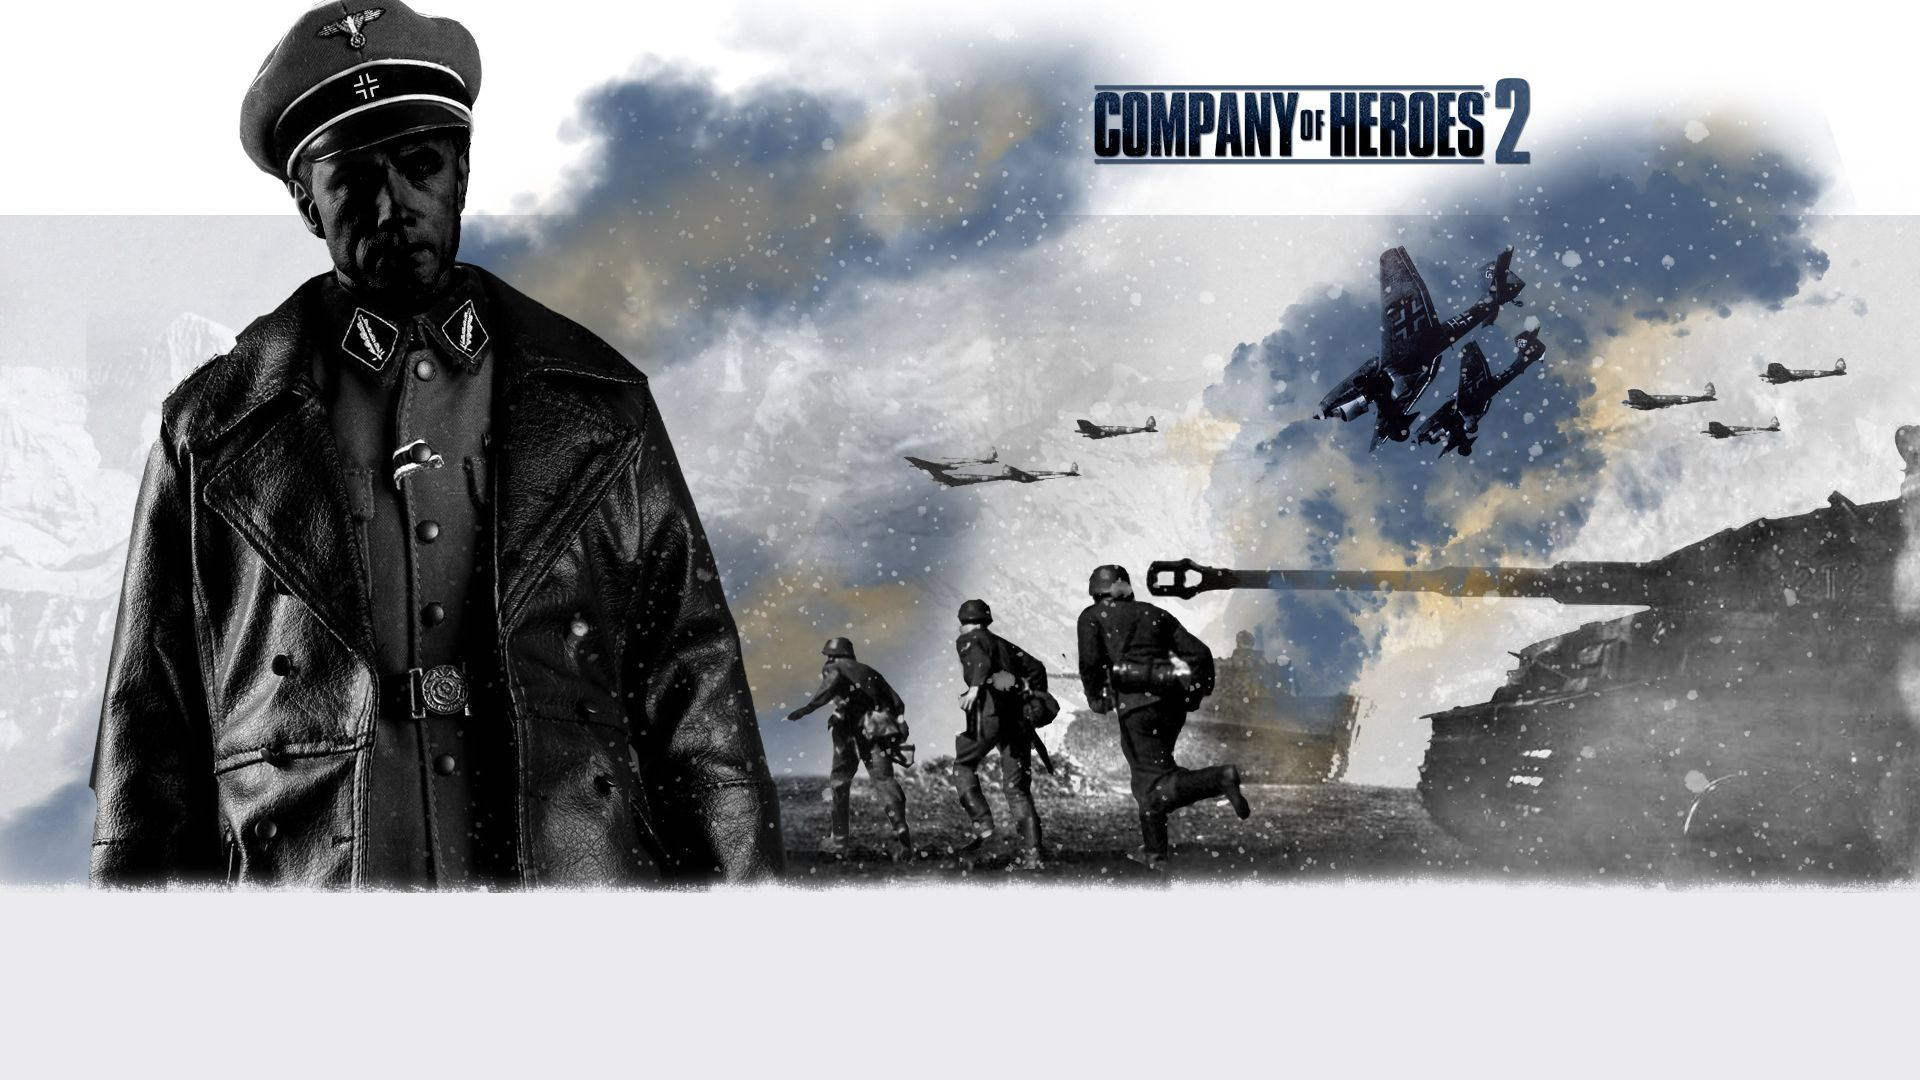 Company Of Heroes 2 Wallpaper Hd Wallpaper Company Of